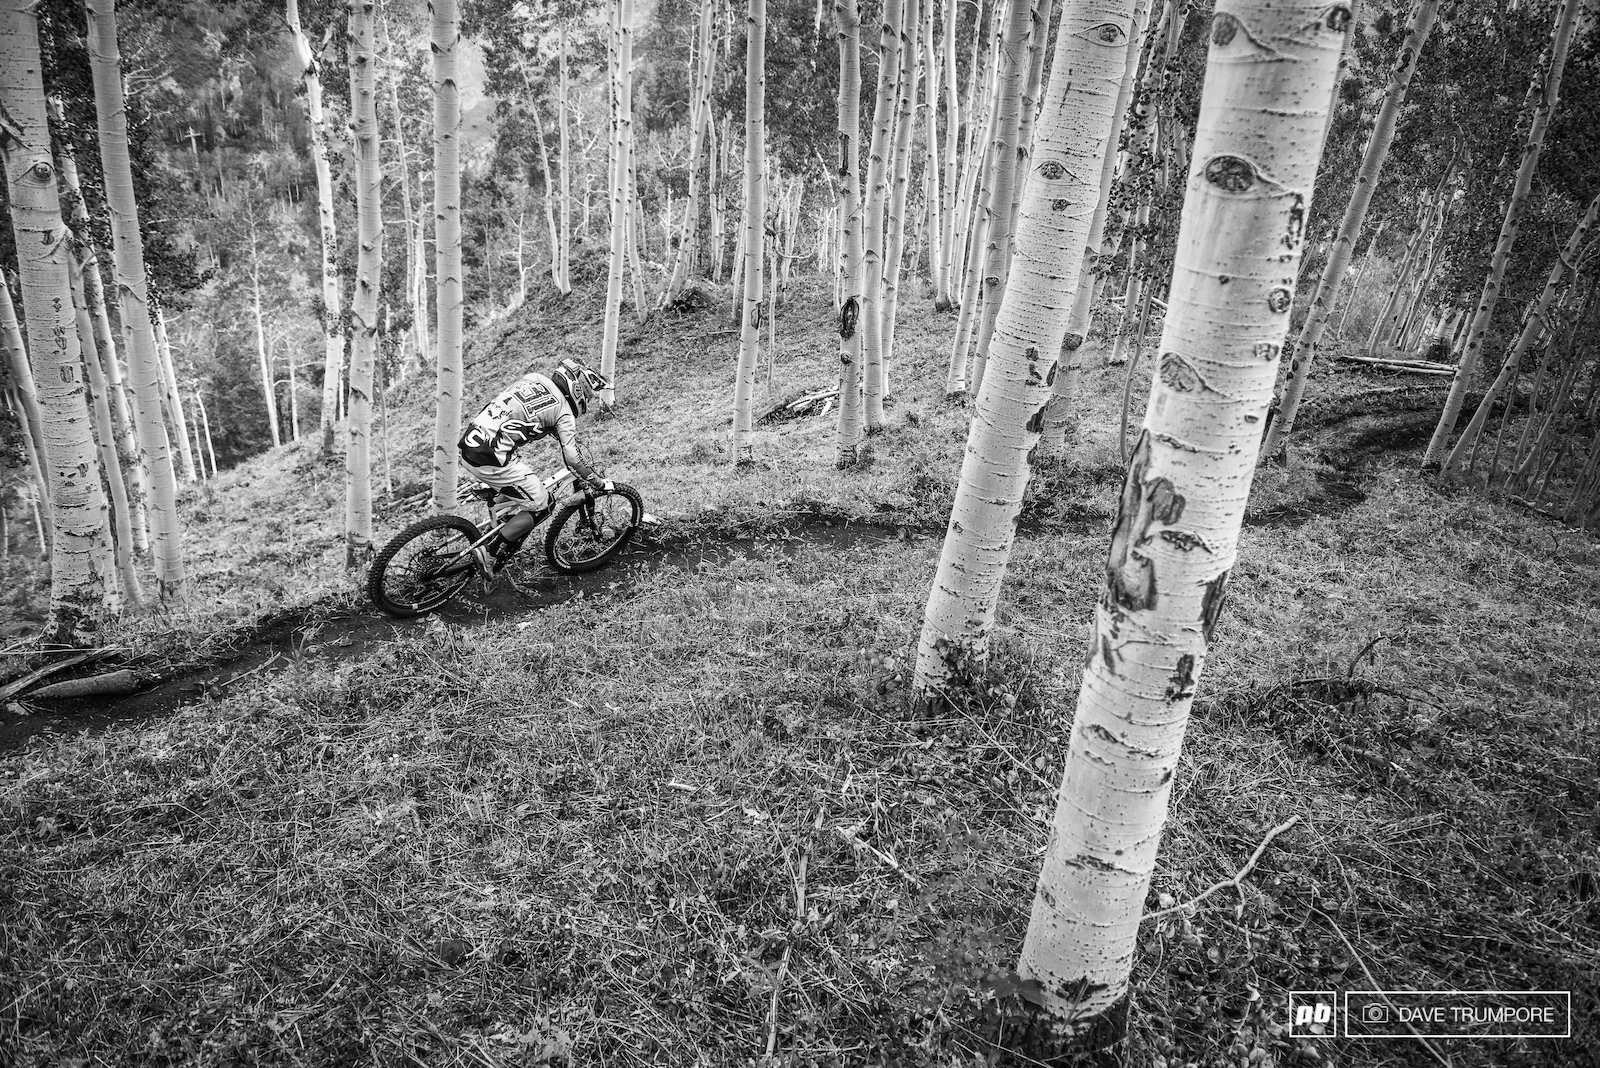 Jerome riders the dirt ribbon between the aspens on stage 2.